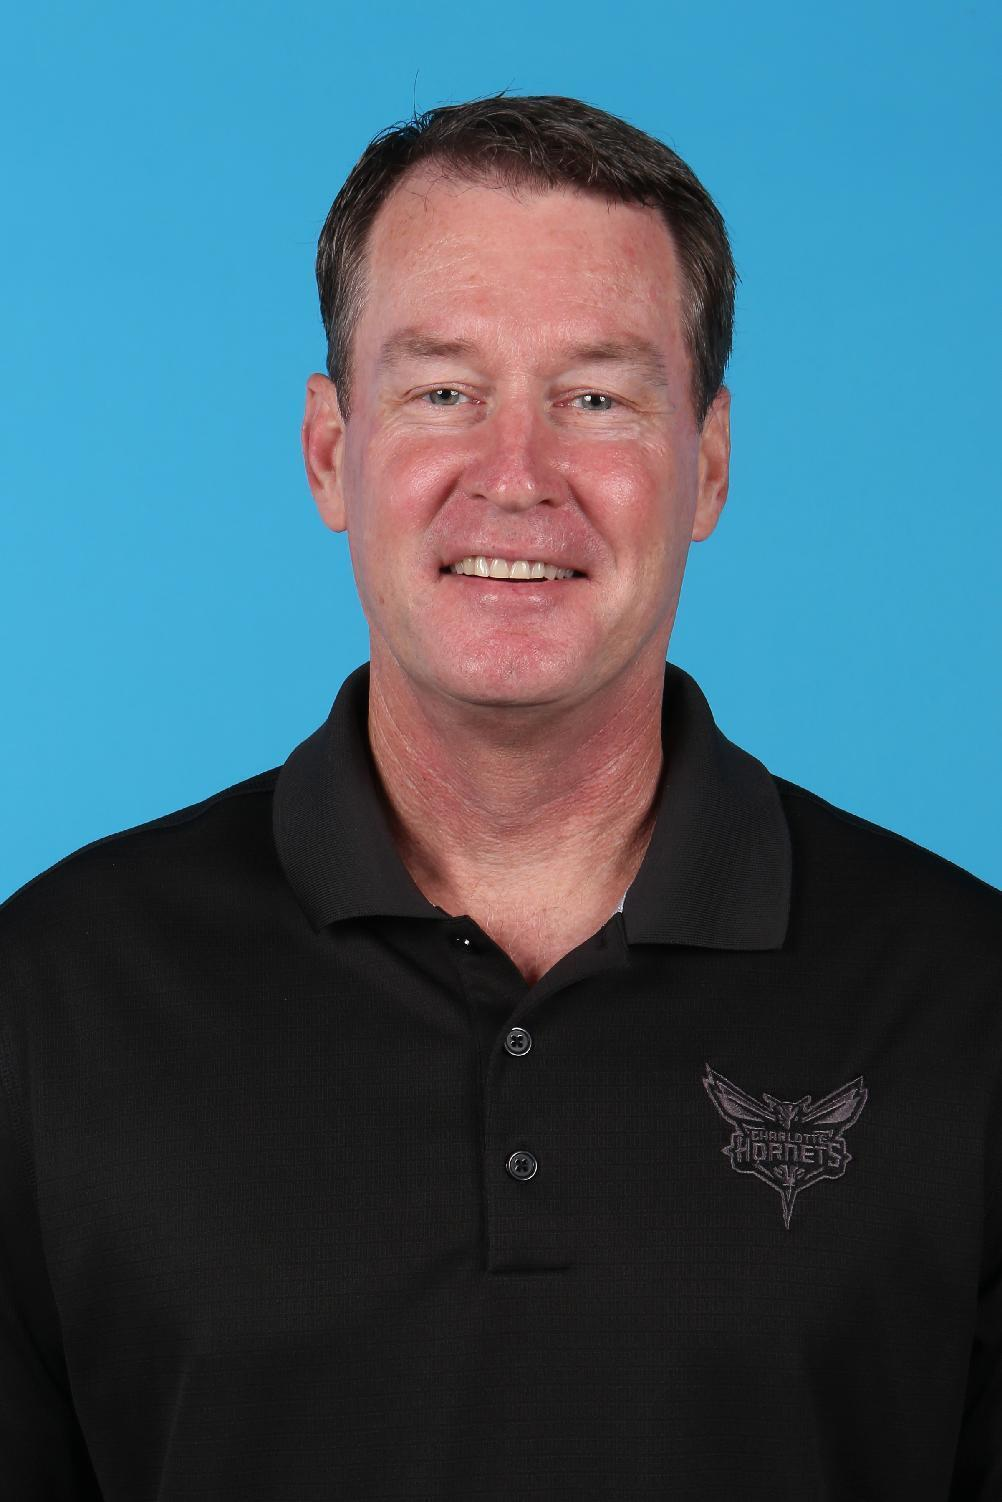 AP Source: Mark Price to take over as Charlotte 49ers coach